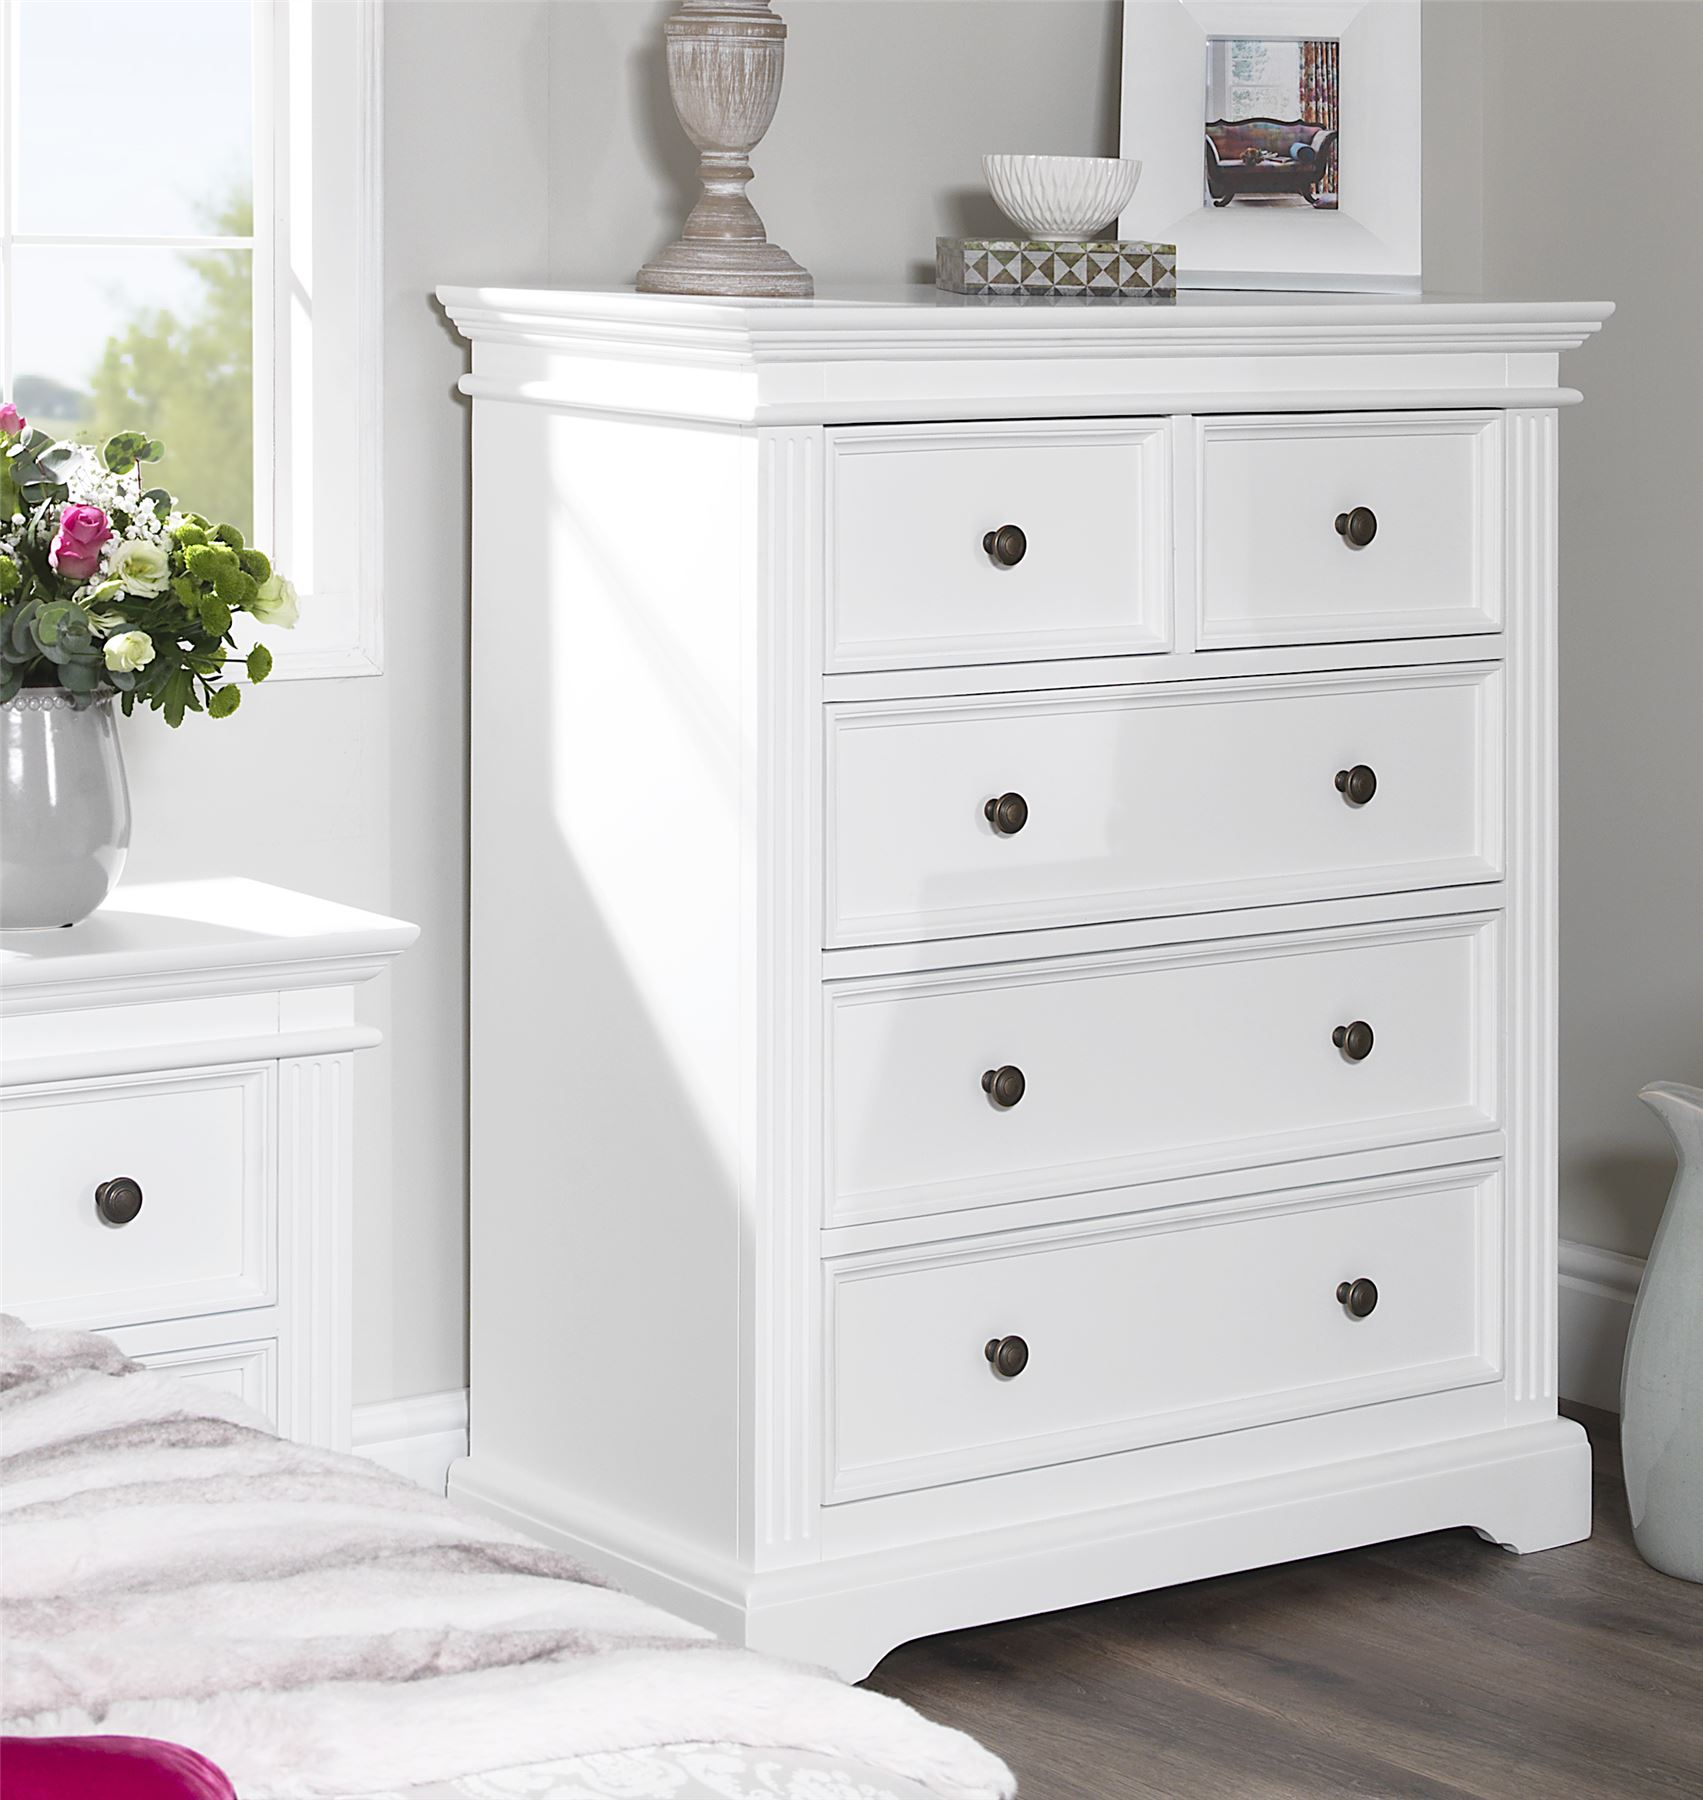 White Bedside Drawers Gainsborough White Bedroom Furniture Bedside Cabinets